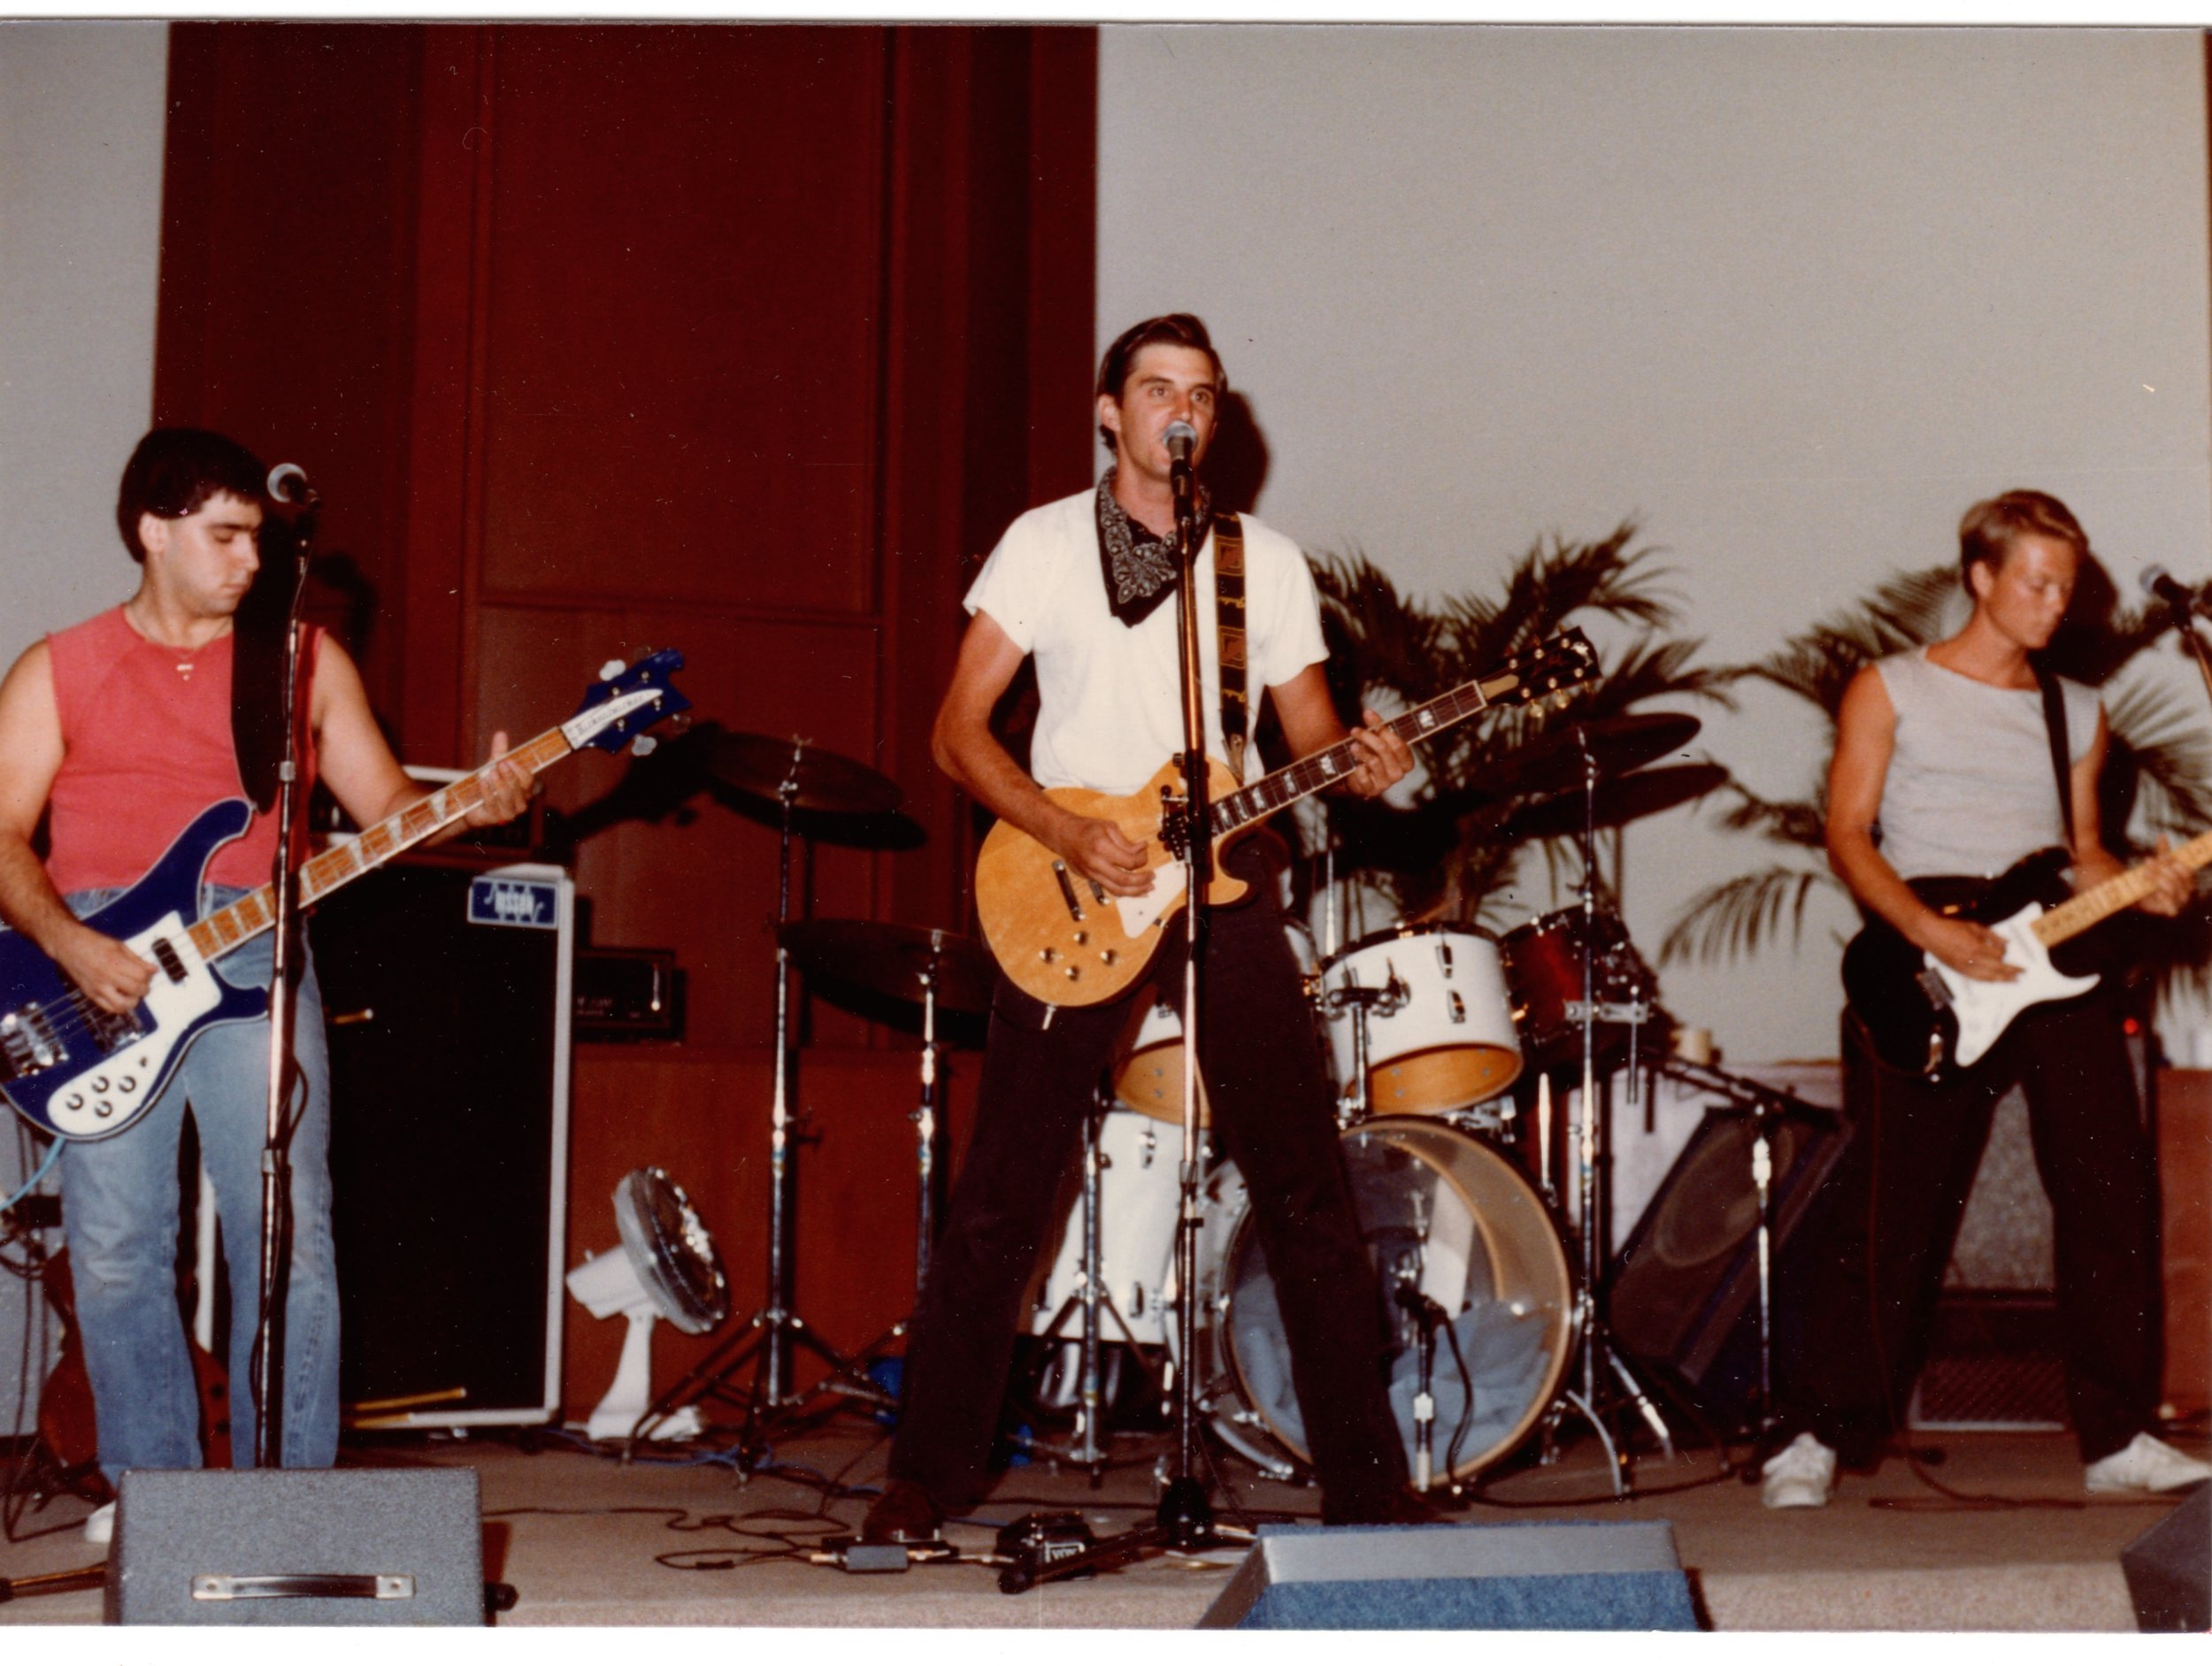 July 1982, first gig at 1st Baptist church Fullerton